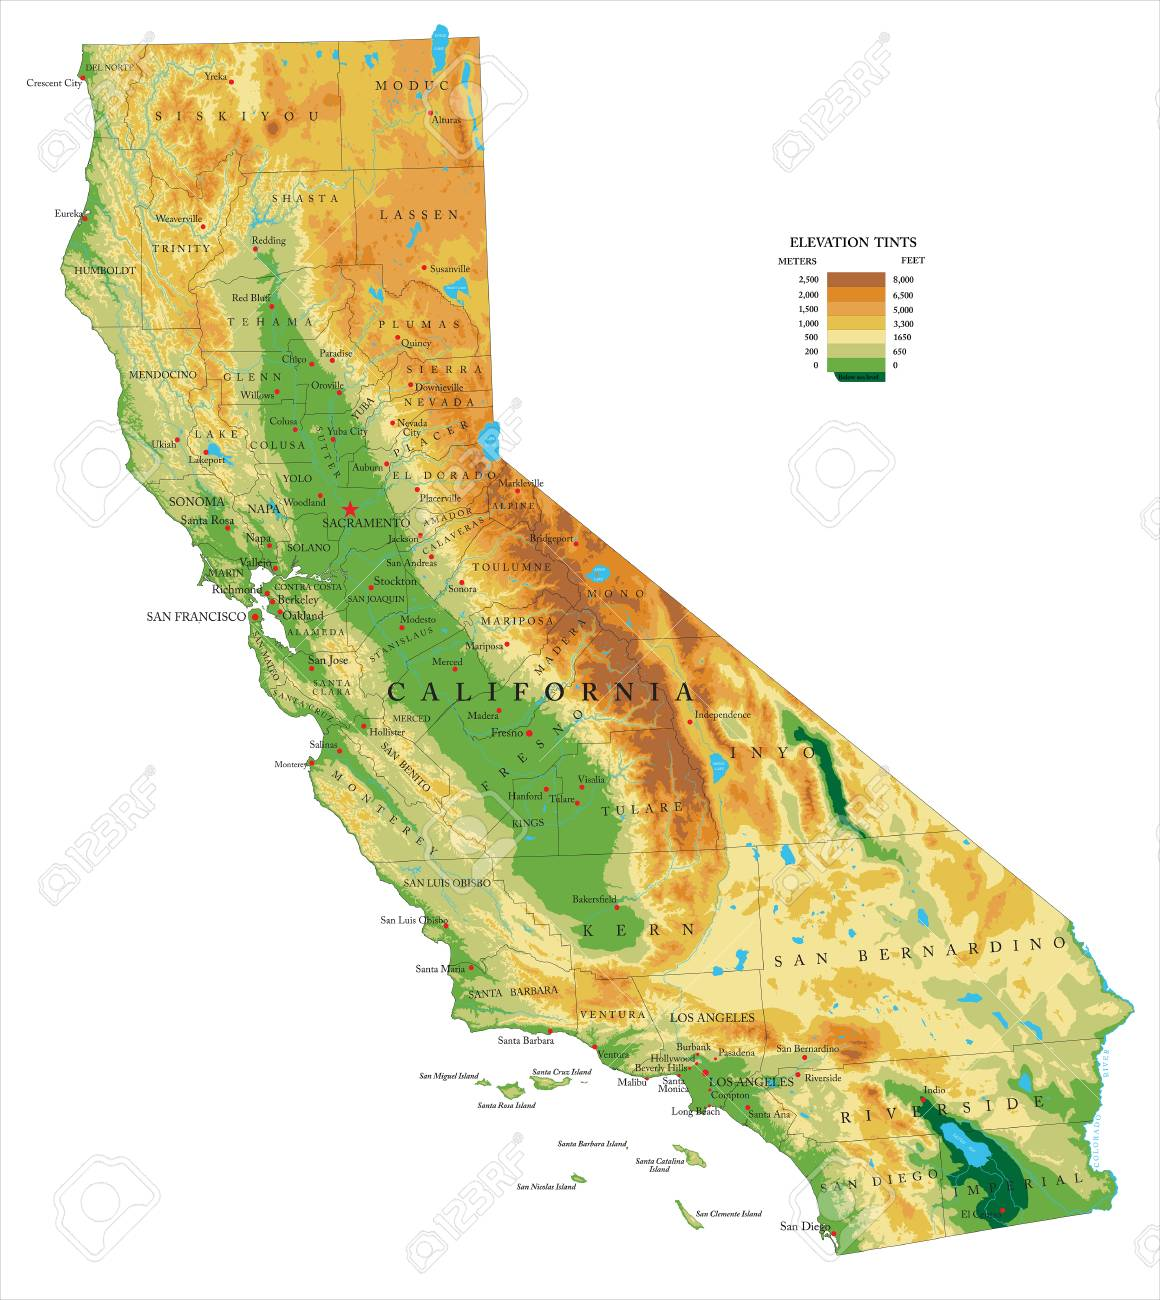 California Physical Map Royalty Free Cliparts, Vectors, And Stock ...